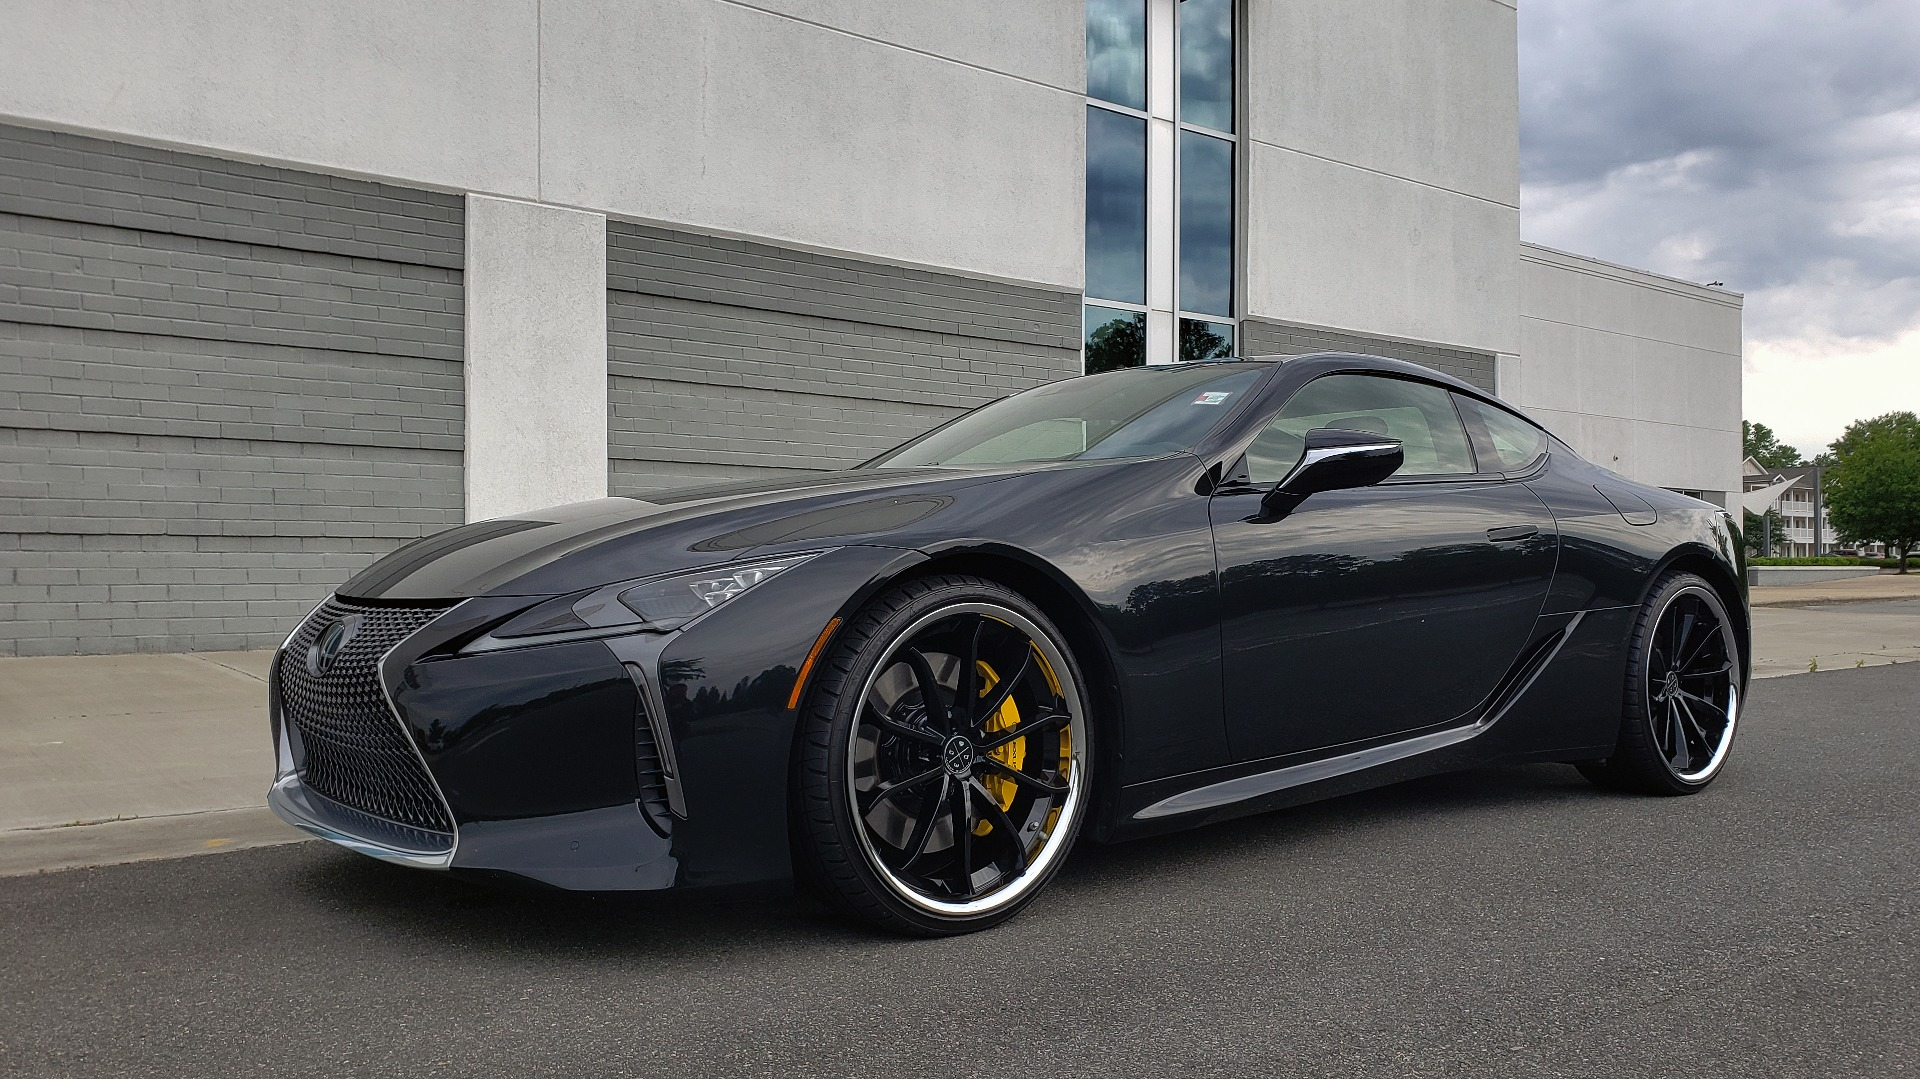 Used 2018 Lexus LC 500 COUPE / 5.0L V8 (471HP) / 10-SPD AUTO / HUD / SUNROOF / REARVIEW for sale Sold at Formula Imports in Charlotte NC 28227 7